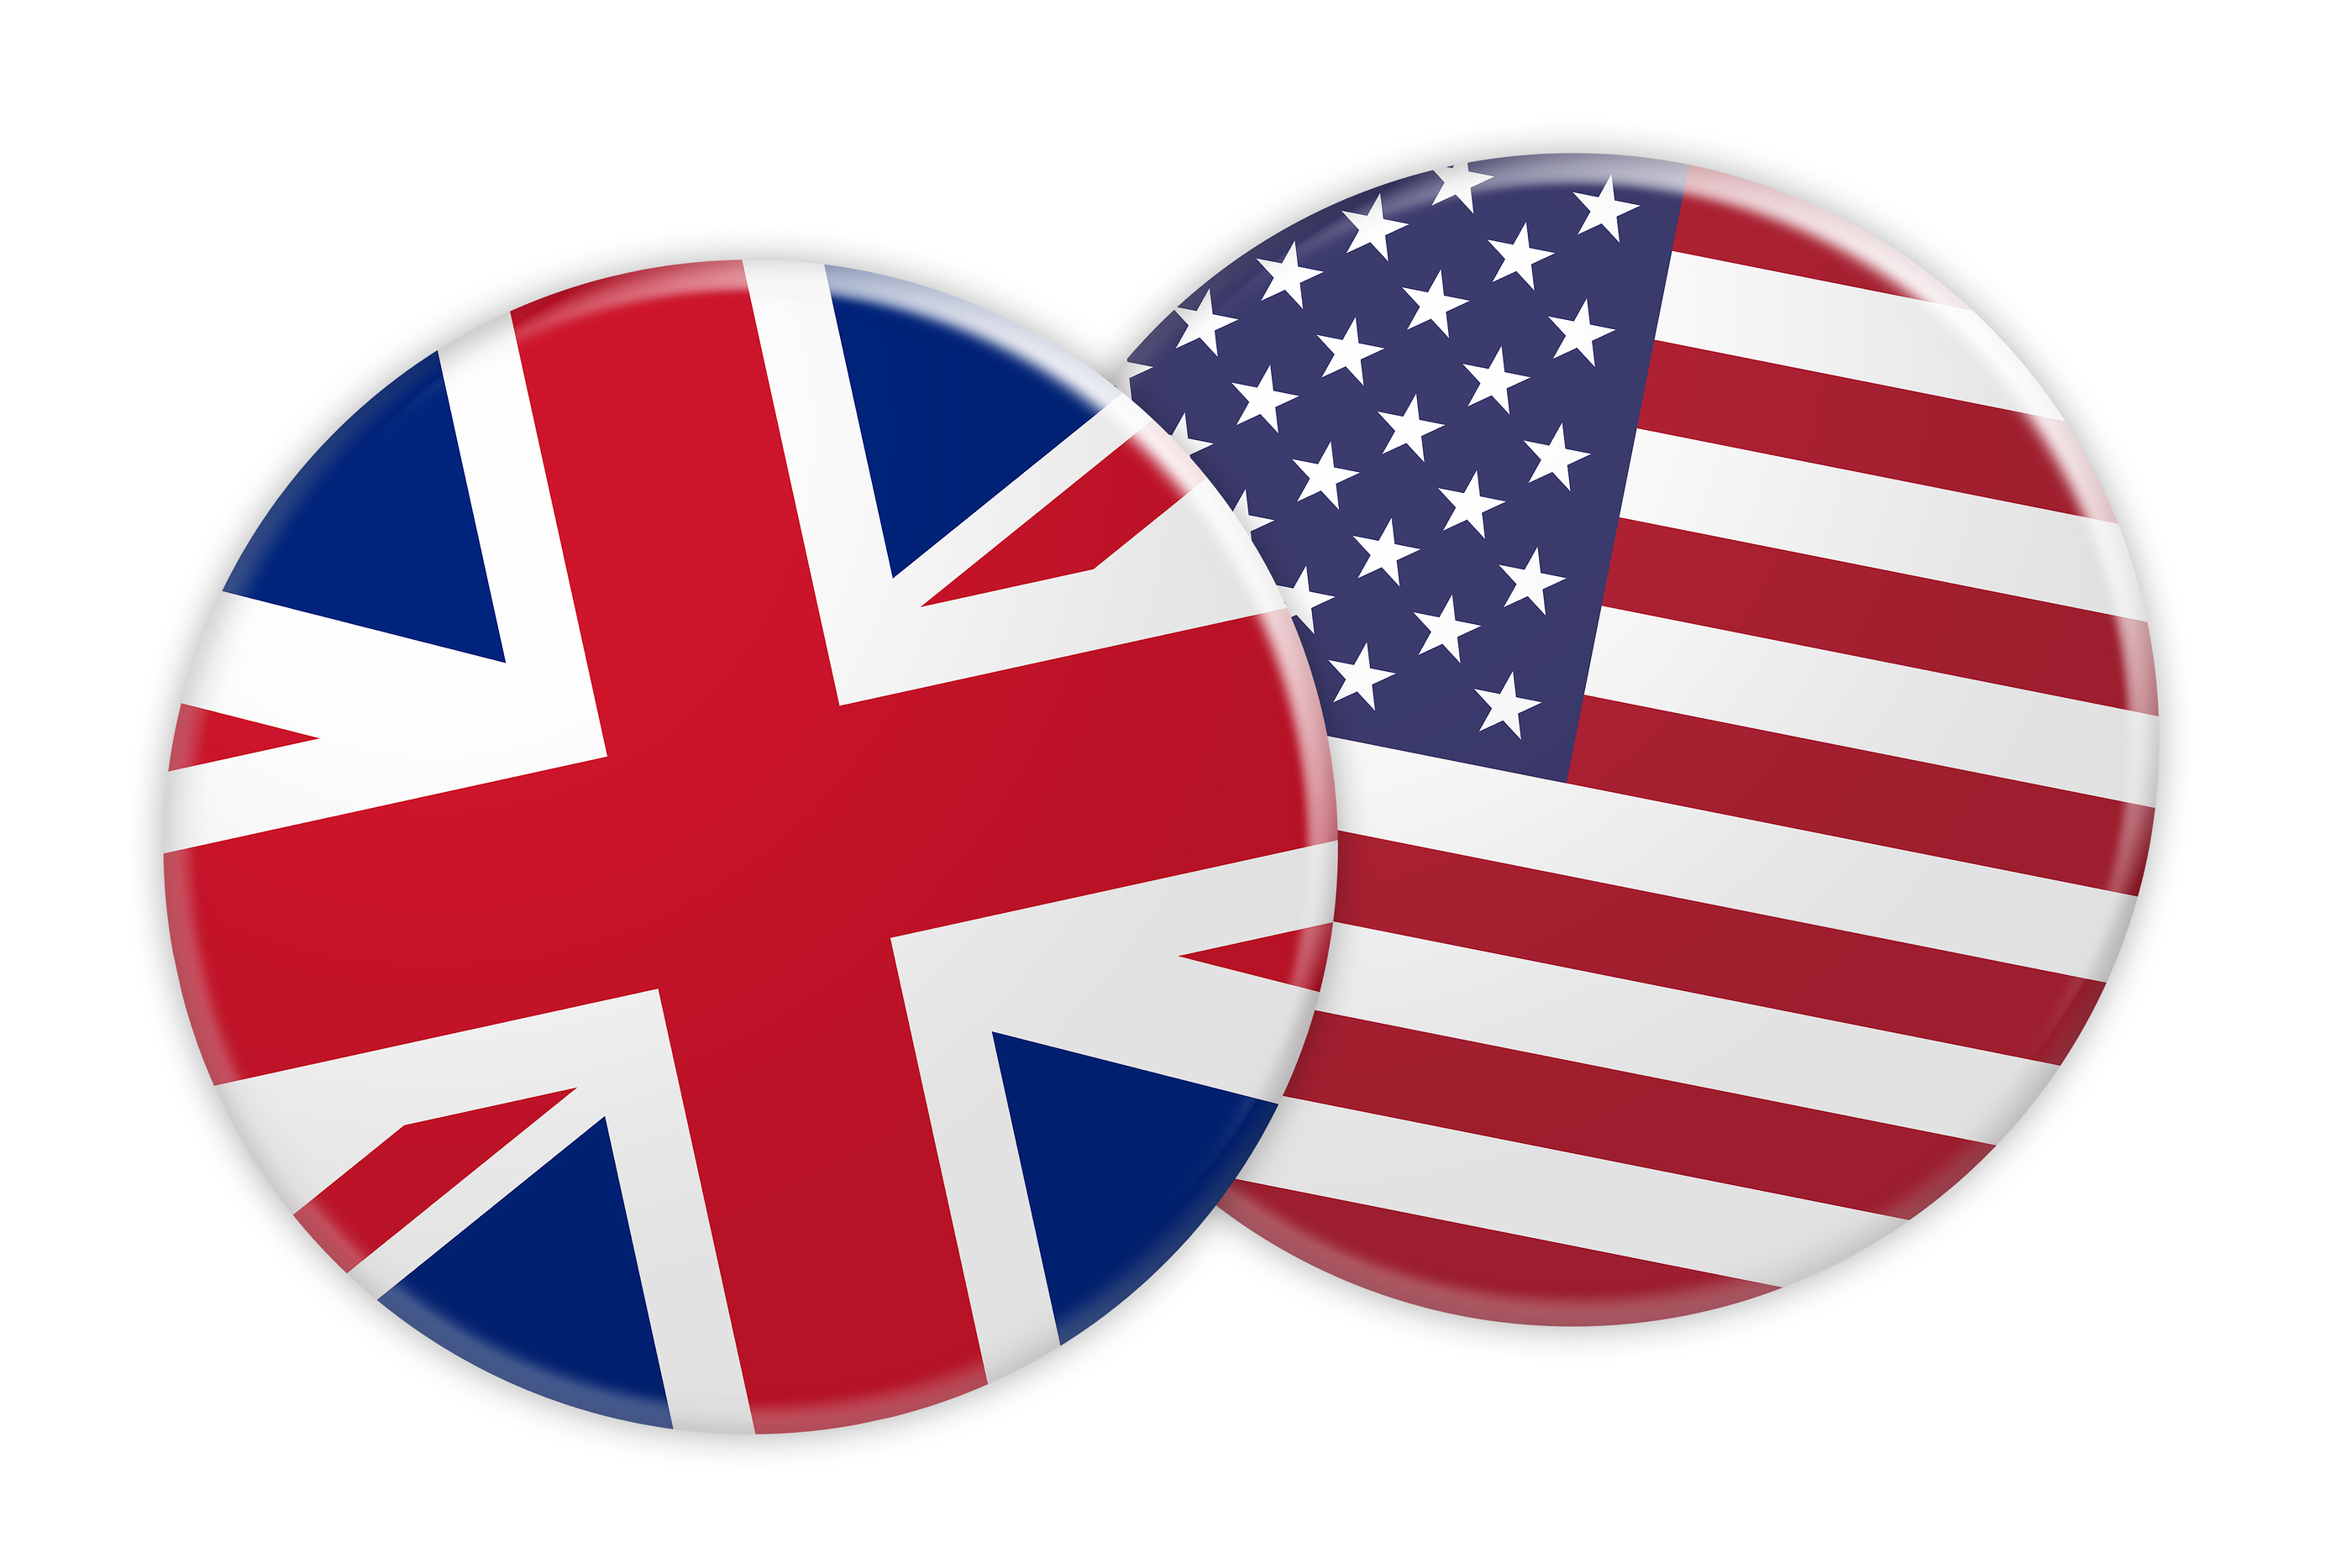 Thumbnail image for Expat job seekers put off the UK and the US due to political and economic uncertainty